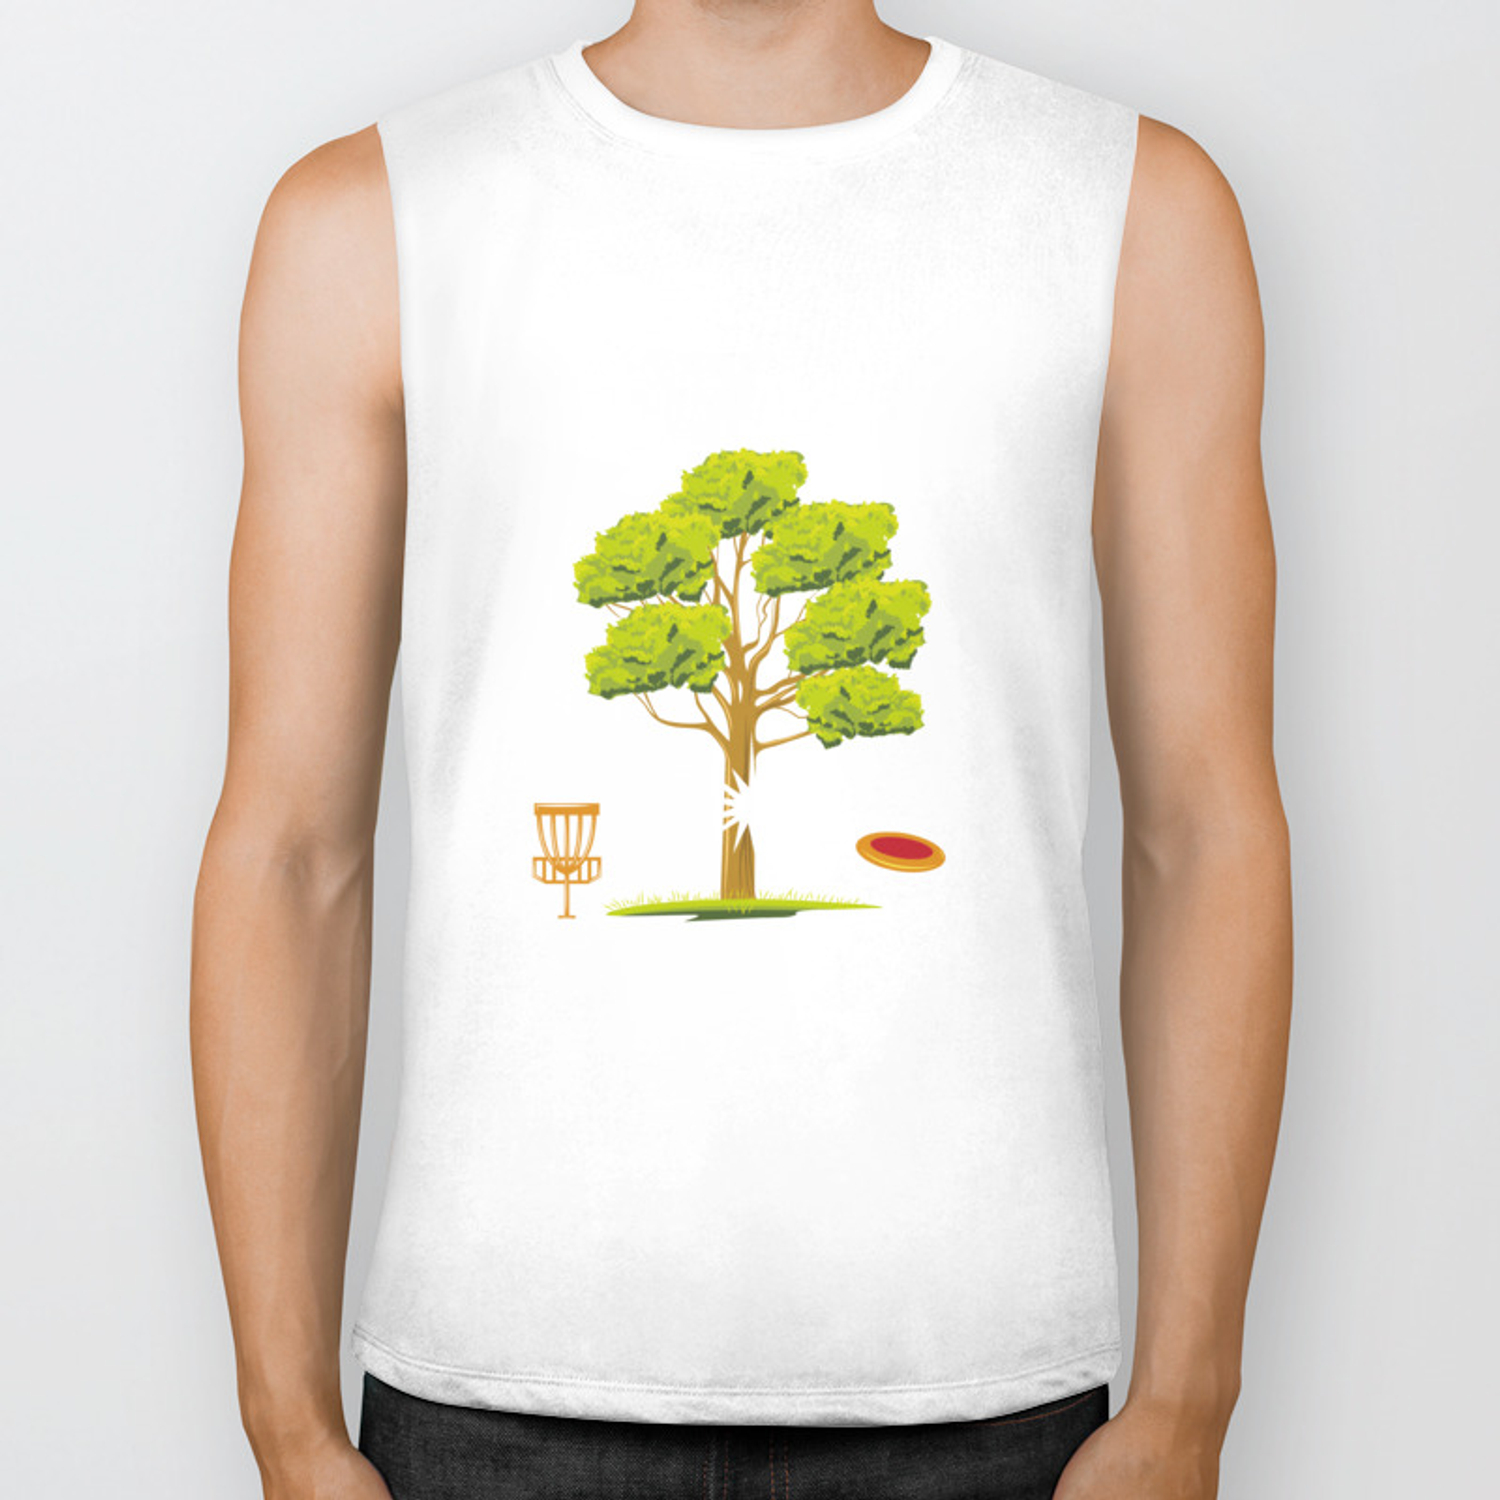 Treejection - Funny Disc Golf Quotes Gift Biker Tank by yeoys